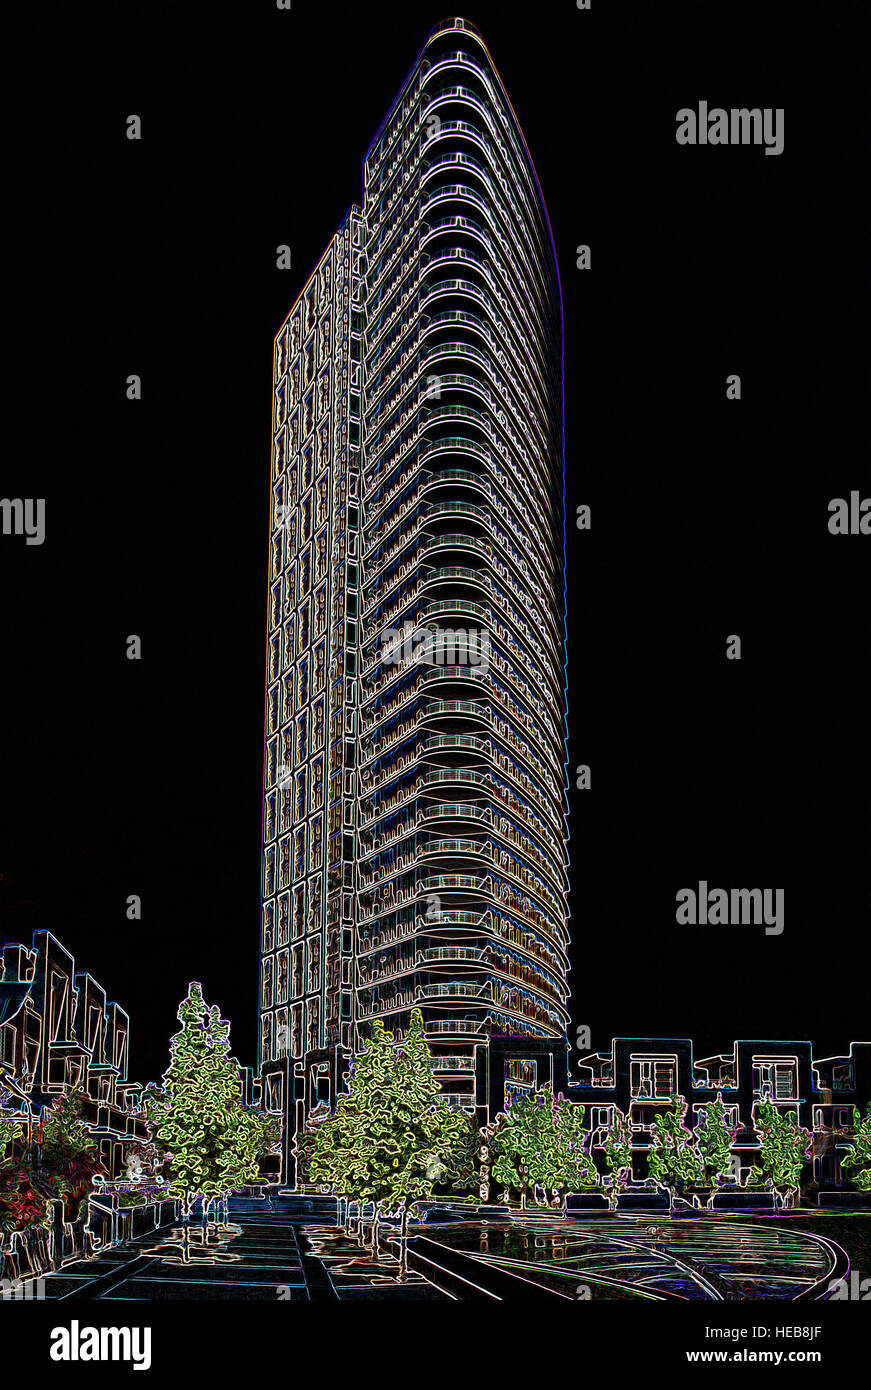 Highrise Building - Digitally Manipulated Image with Glowing Edges, Abstract Architecture and Cityscape on a Black - Stock Image